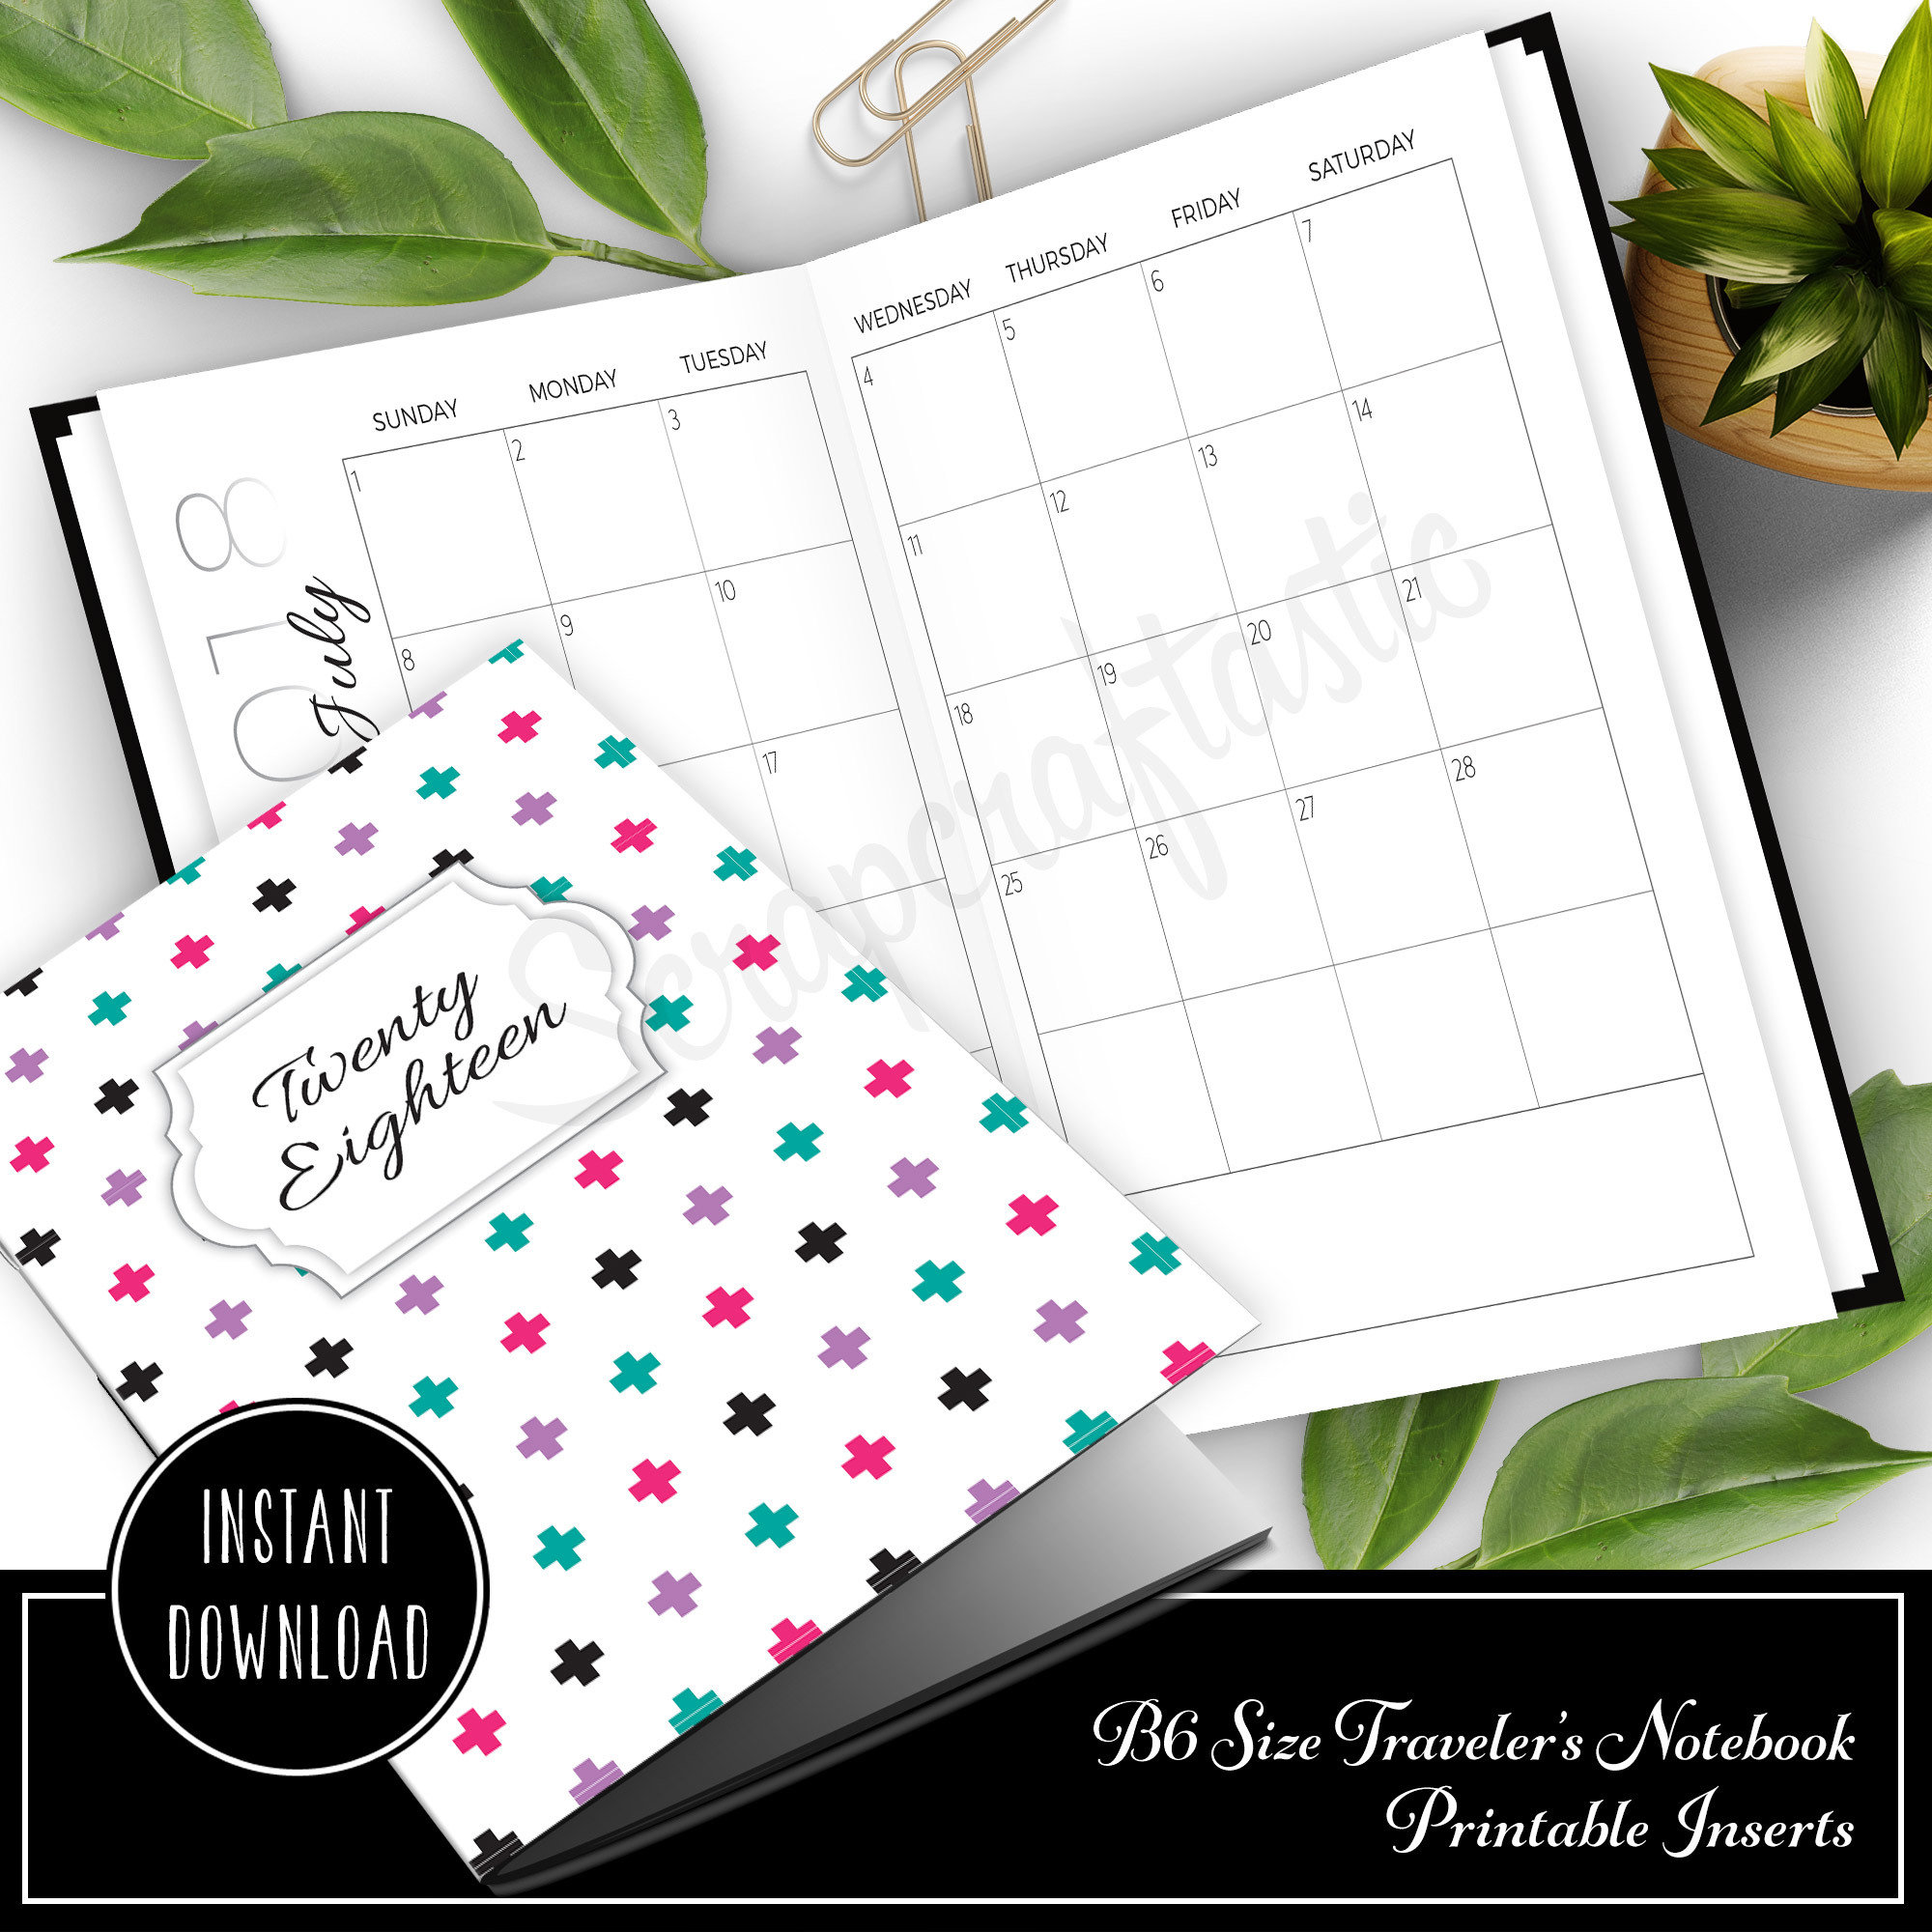 Full Notebook Dated: 2018 Monthly B6 Printable Traveler's Notebook Insert 50024